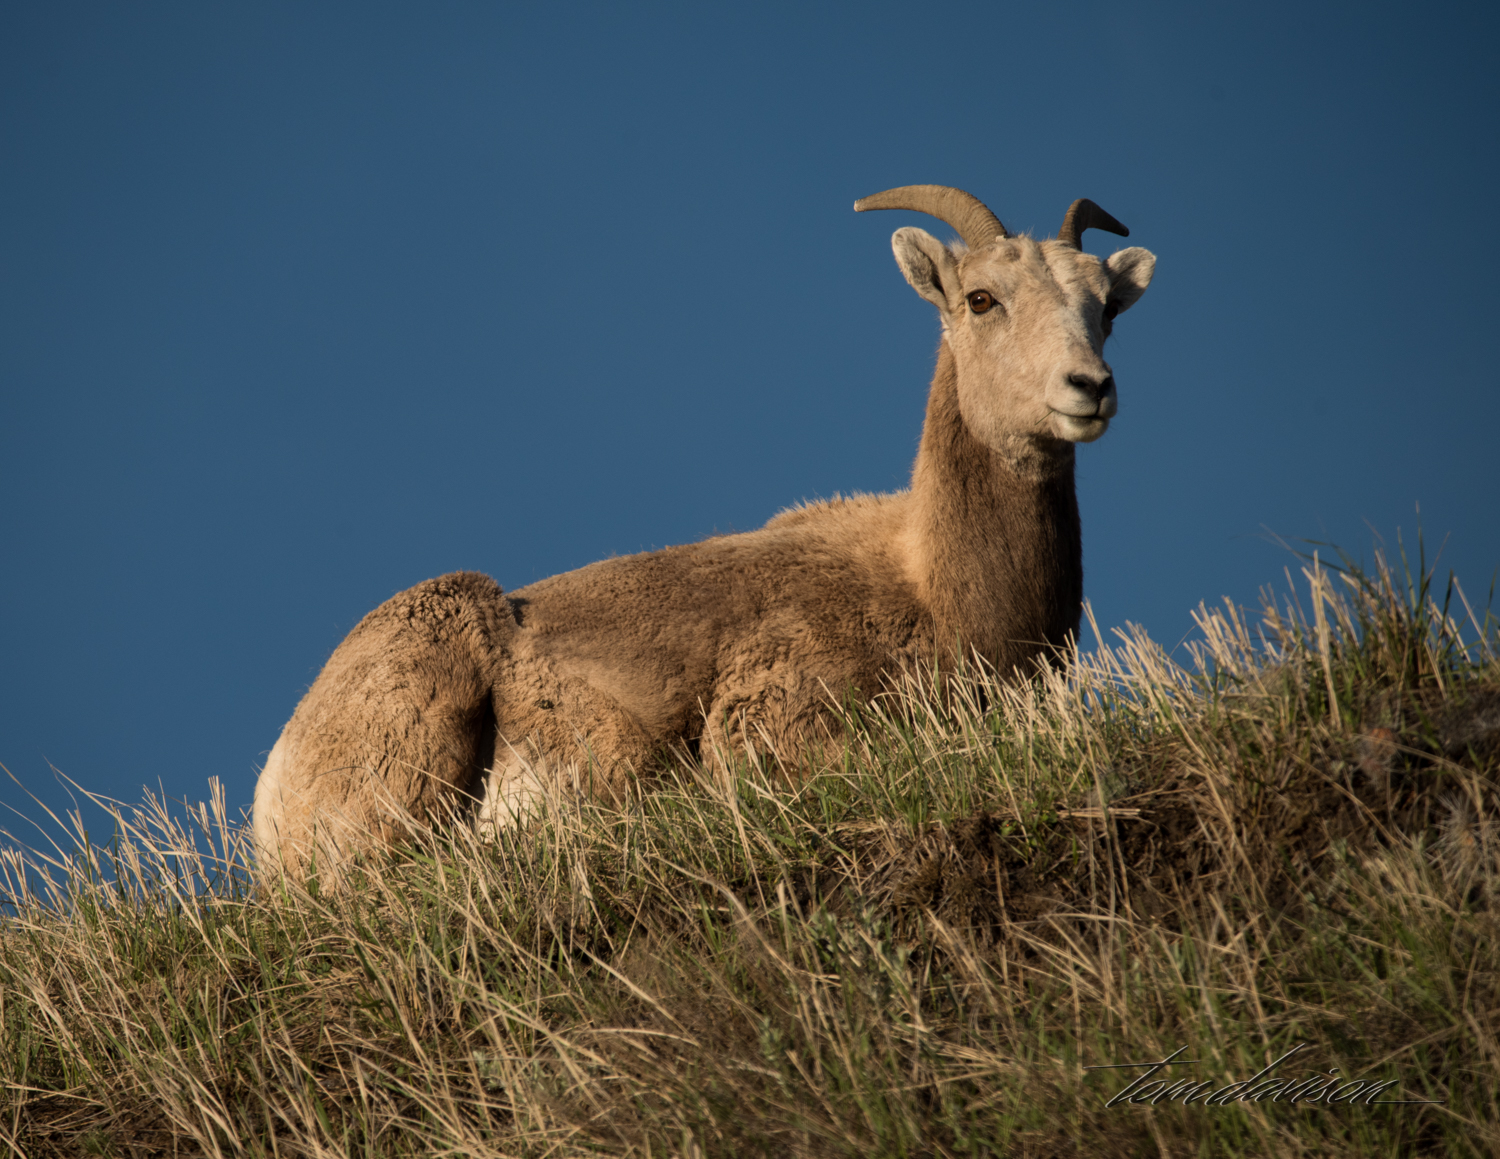 We saw plenty of Big Horn sheep. They are very used to tourist traffic and will pass within feet of photographers.